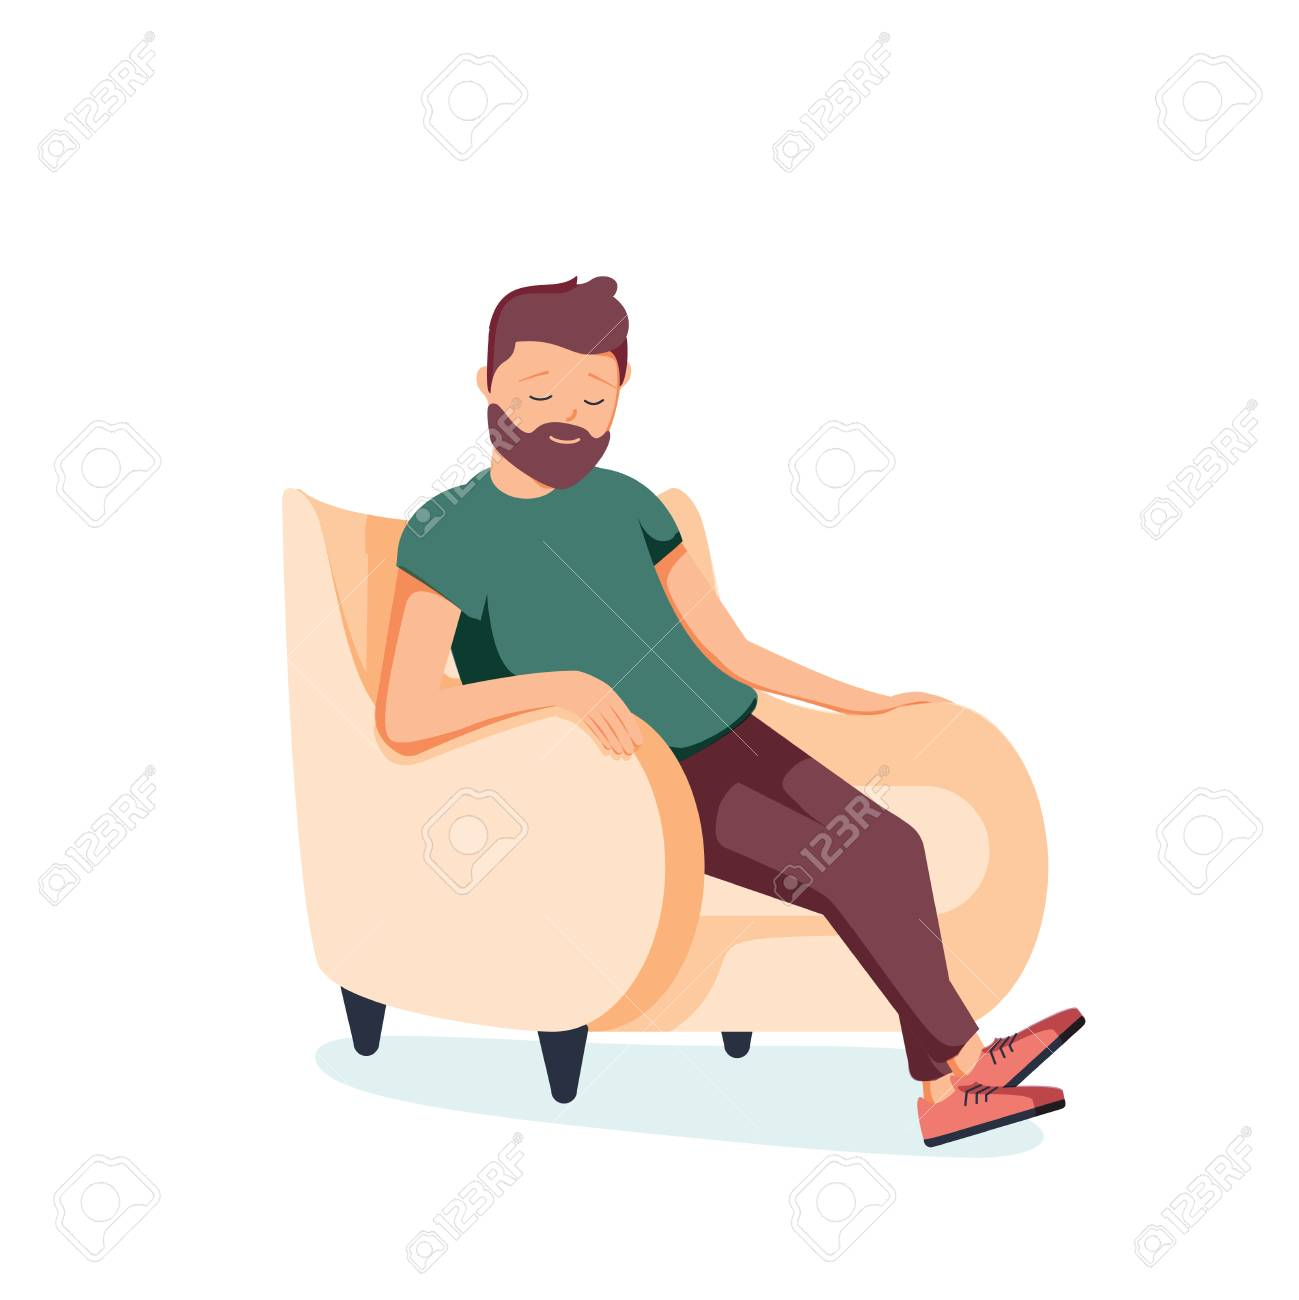 Bearded man sits in an armchair and sleeps. A person is resting or thinking about something good. Vector illustration in cartoon style. Tired businessman resting at home. Relaxation and healthcare - 126772598